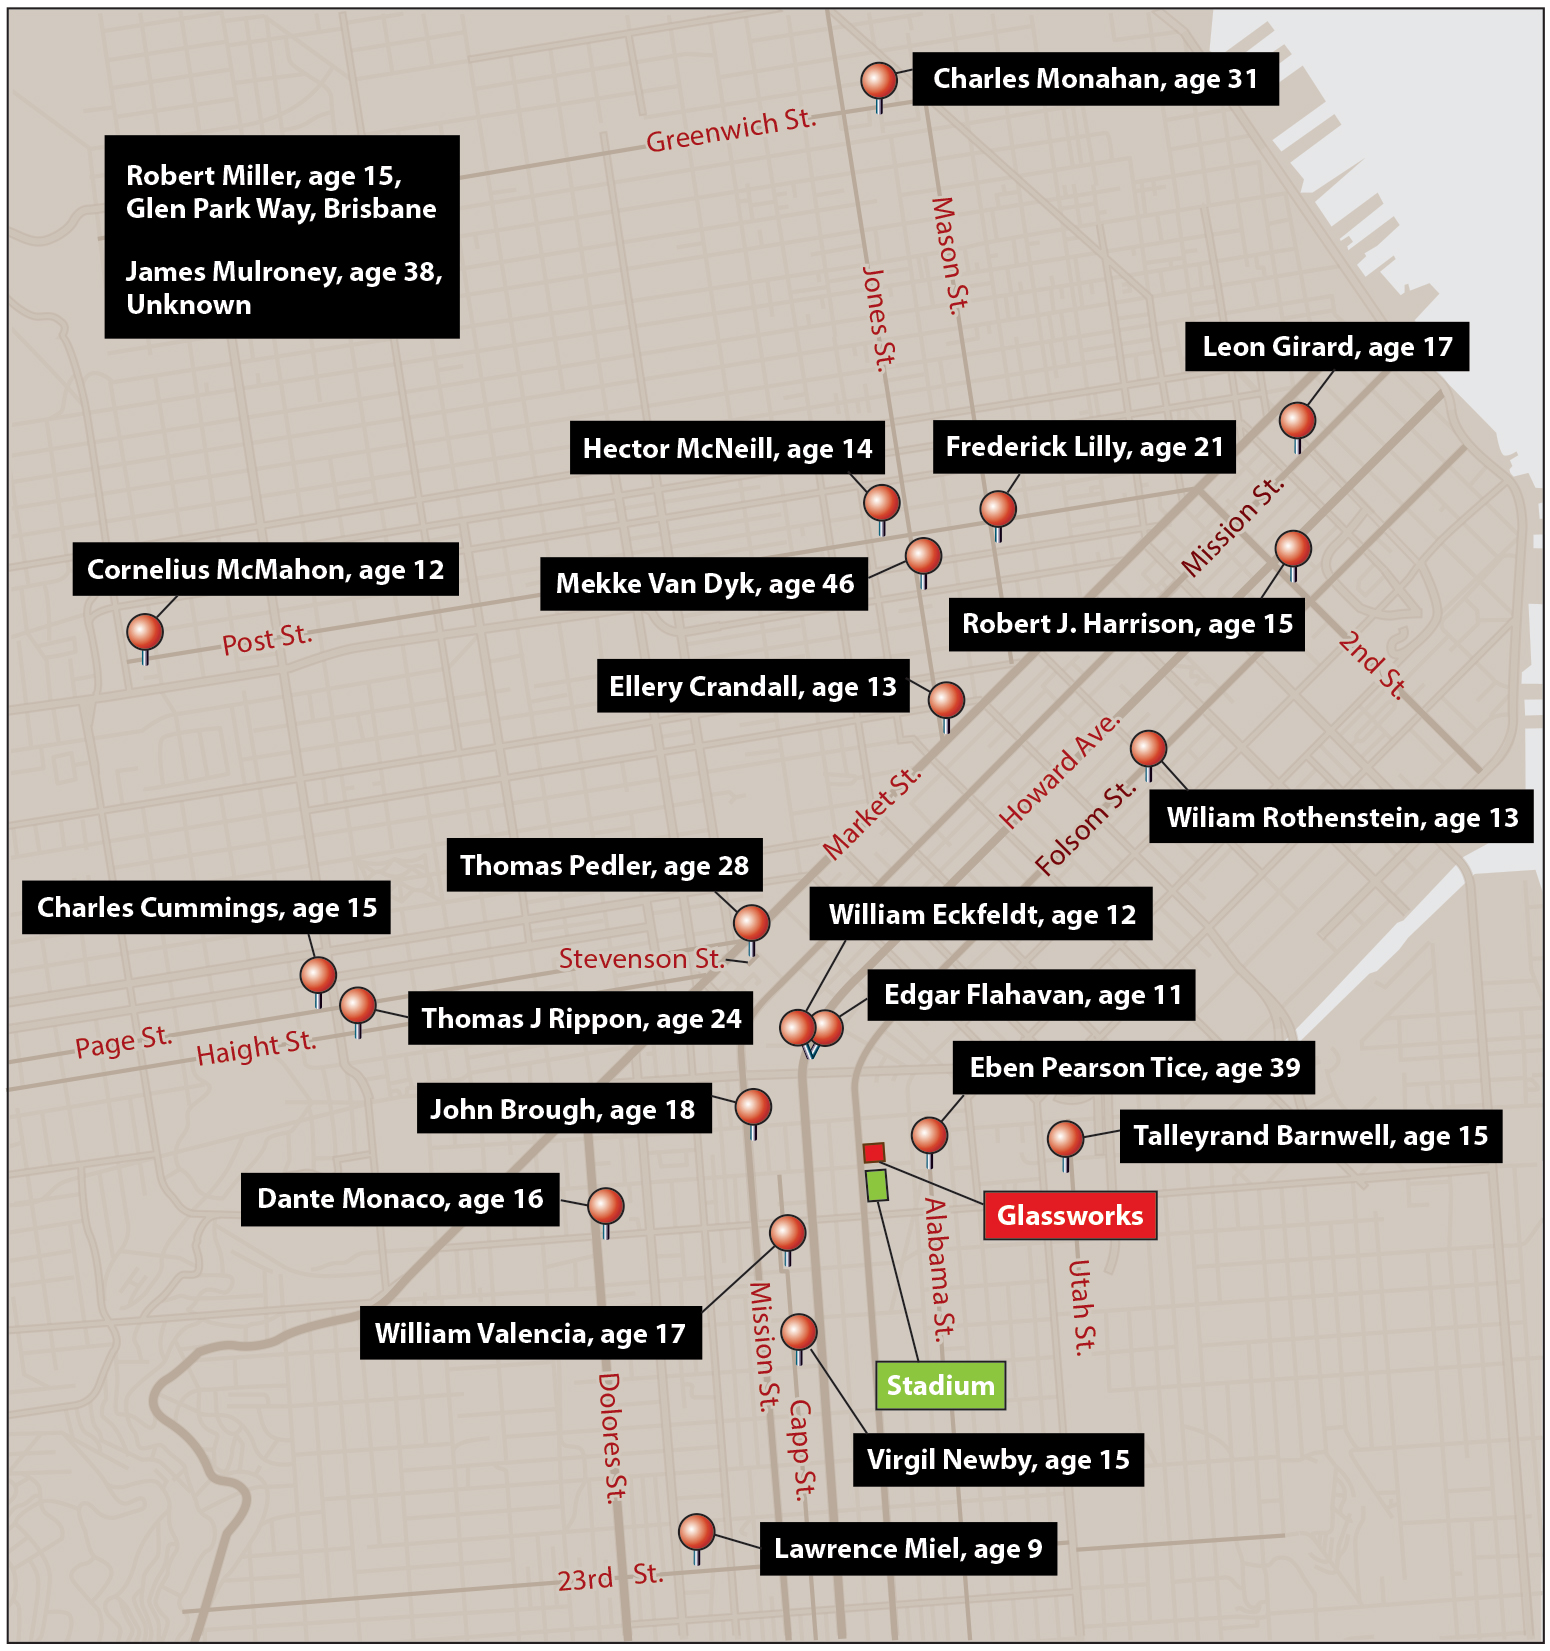 A map showing where the victims of the accident lived. Most are in the age range 10-30 years and live a few streets down.